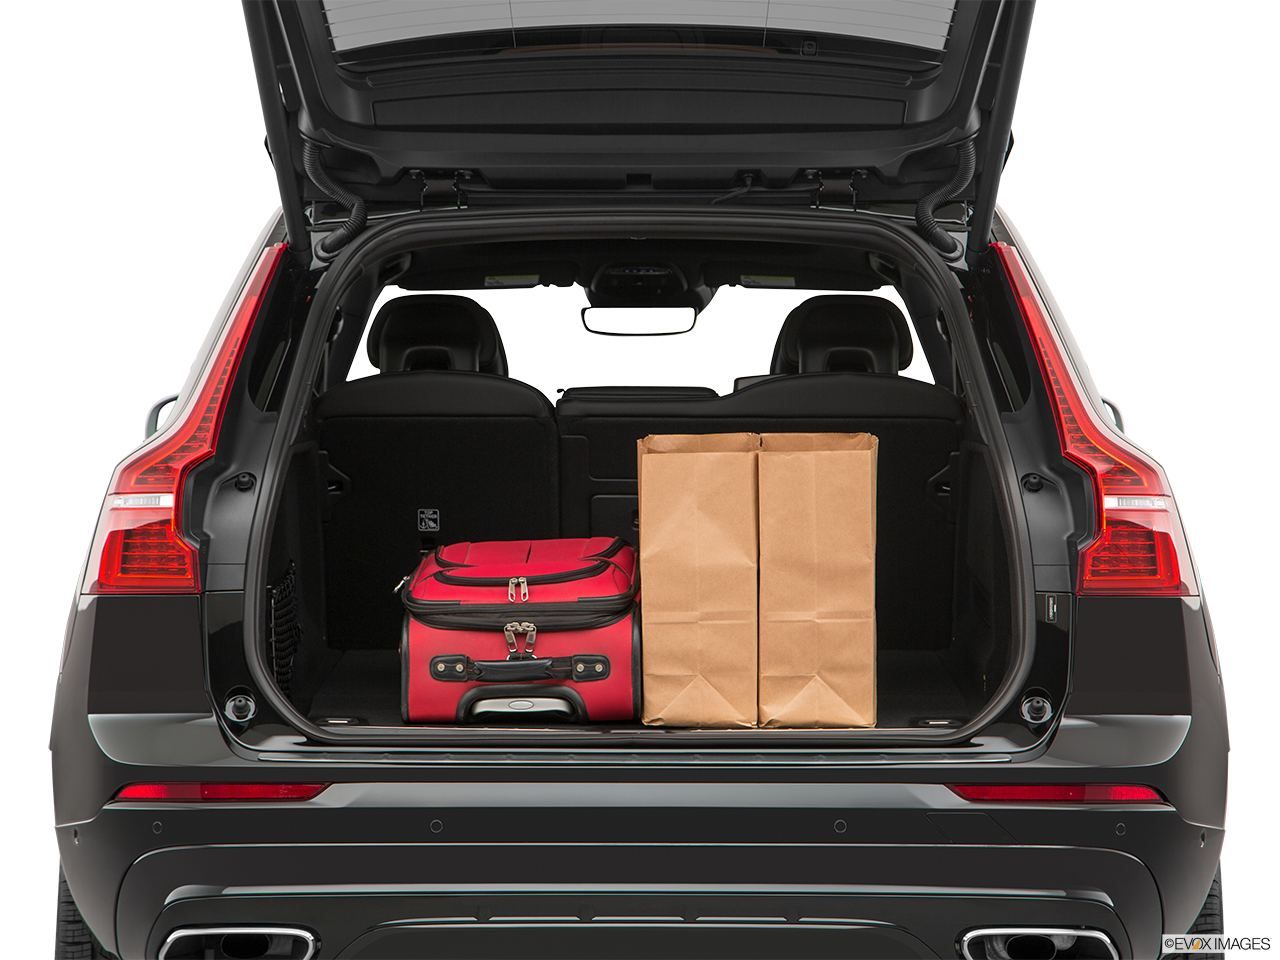 Trunk view of the Volvo XC60 PHEV